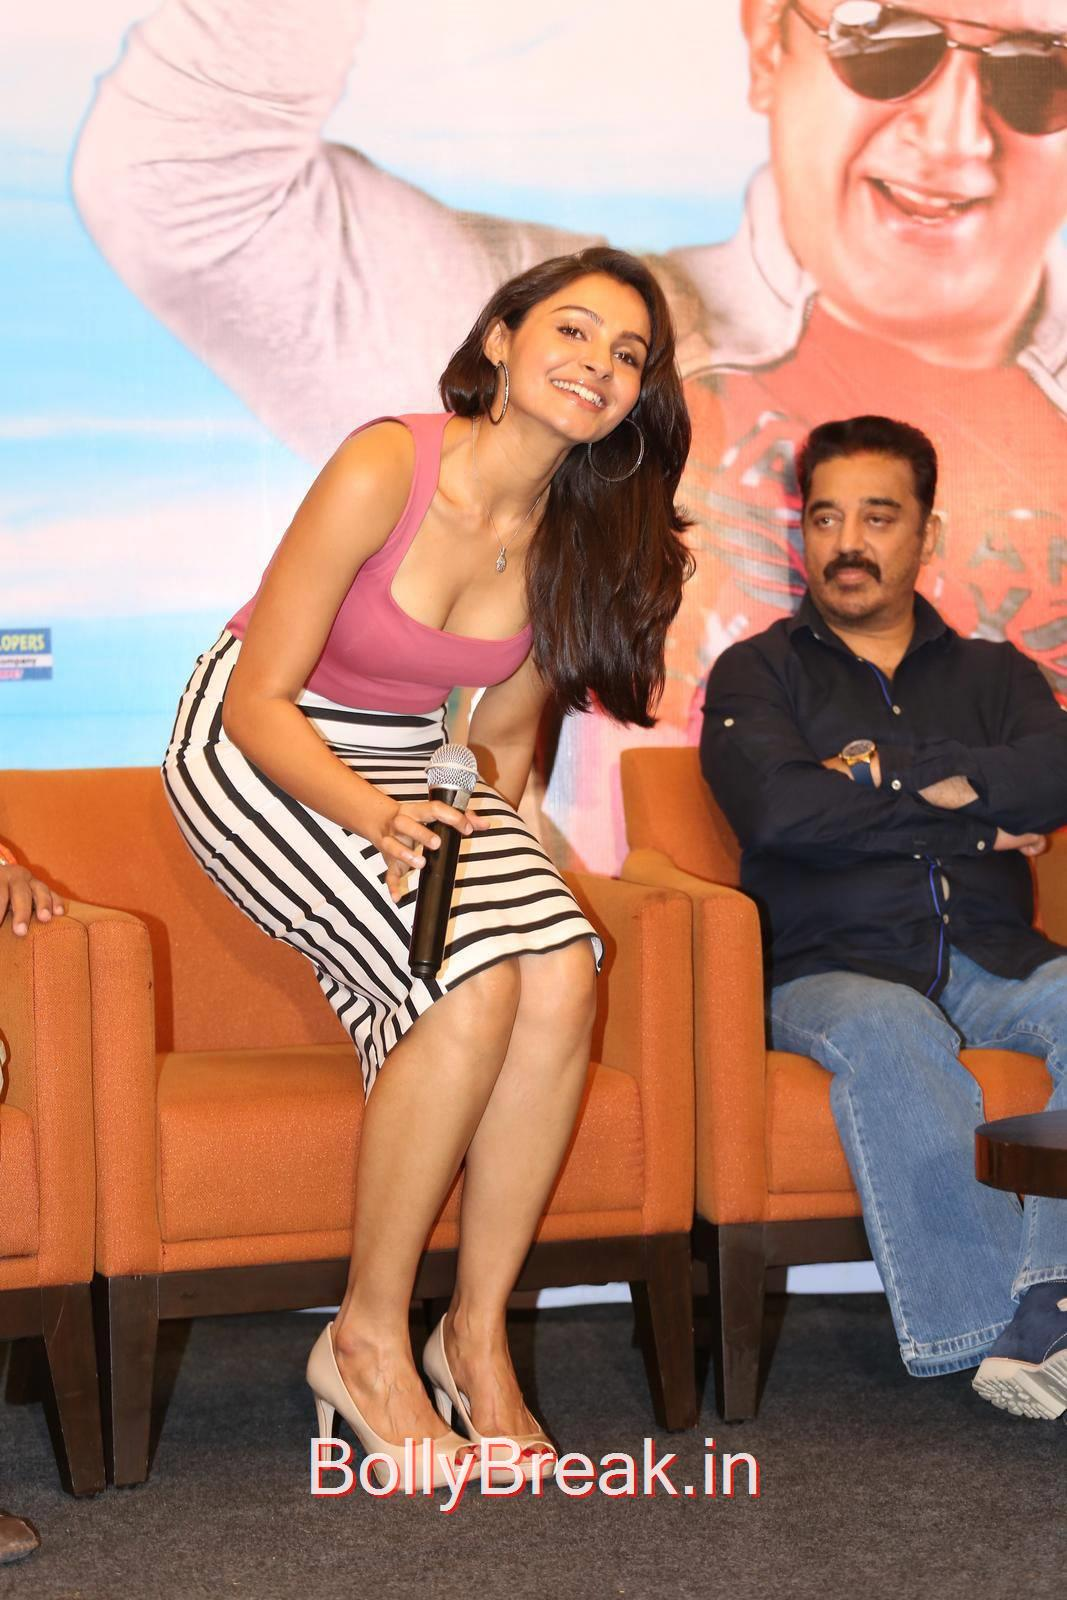 Kamal Hassan-Uttama Villain Film Press Meet Pics, Hot HD Images of Andrea Jeremiah Pooja Kumar From Uttama Villain Movie Release Date Press Meet